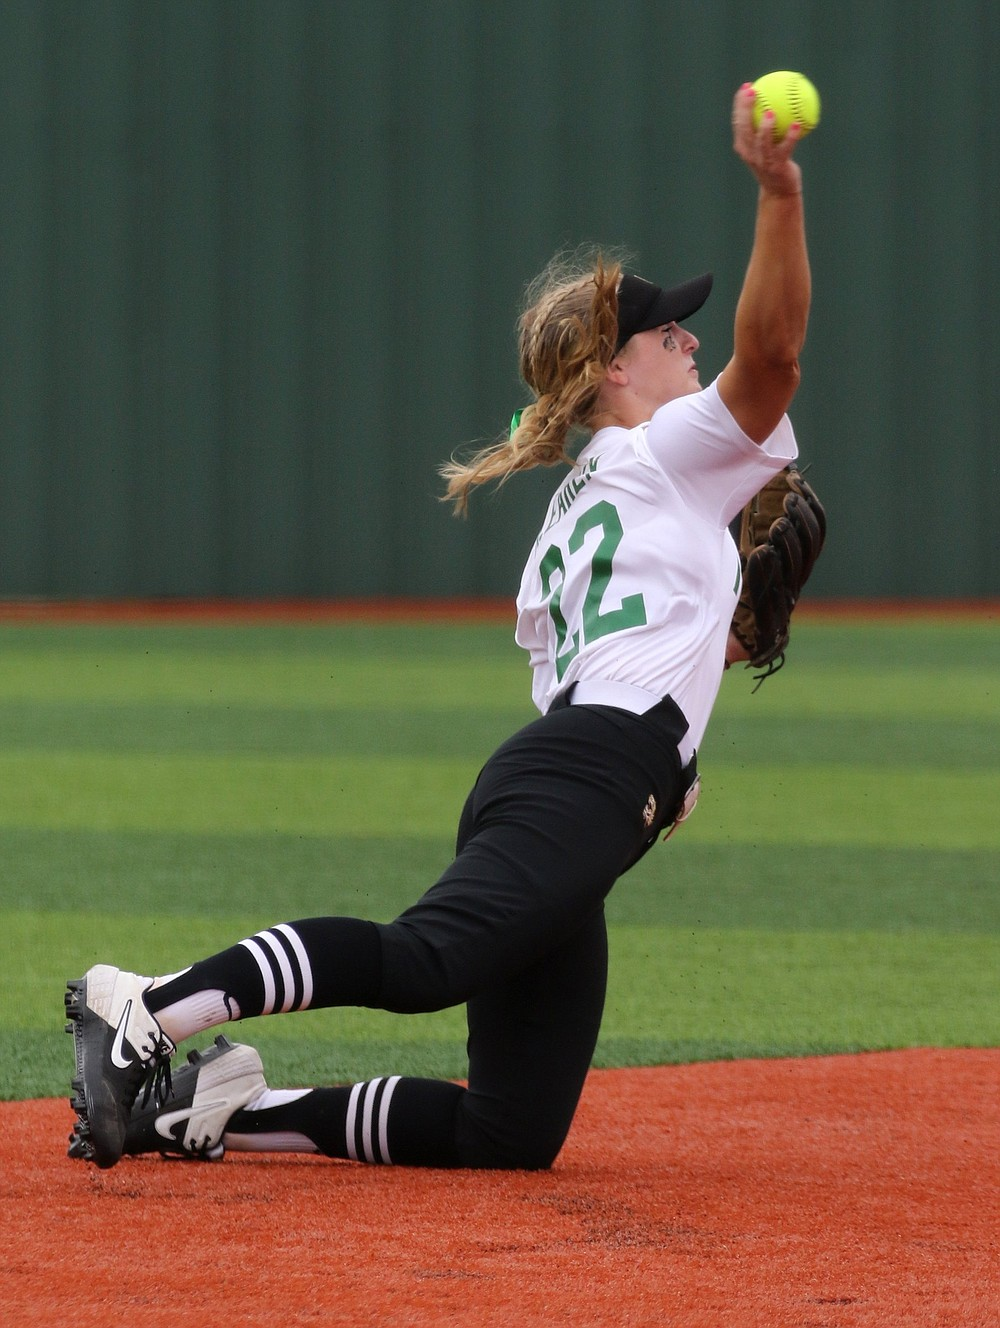 Bentonville shortstop Senzie Derryberry makes a play during the Lady Tigers' 3-0 victory over Conway in the Class 6A state championship game Friday. More photos at www.arkansasonline.com/522softball6a/ (Arkansas Democrat-Gazette/Thomas Metthe)